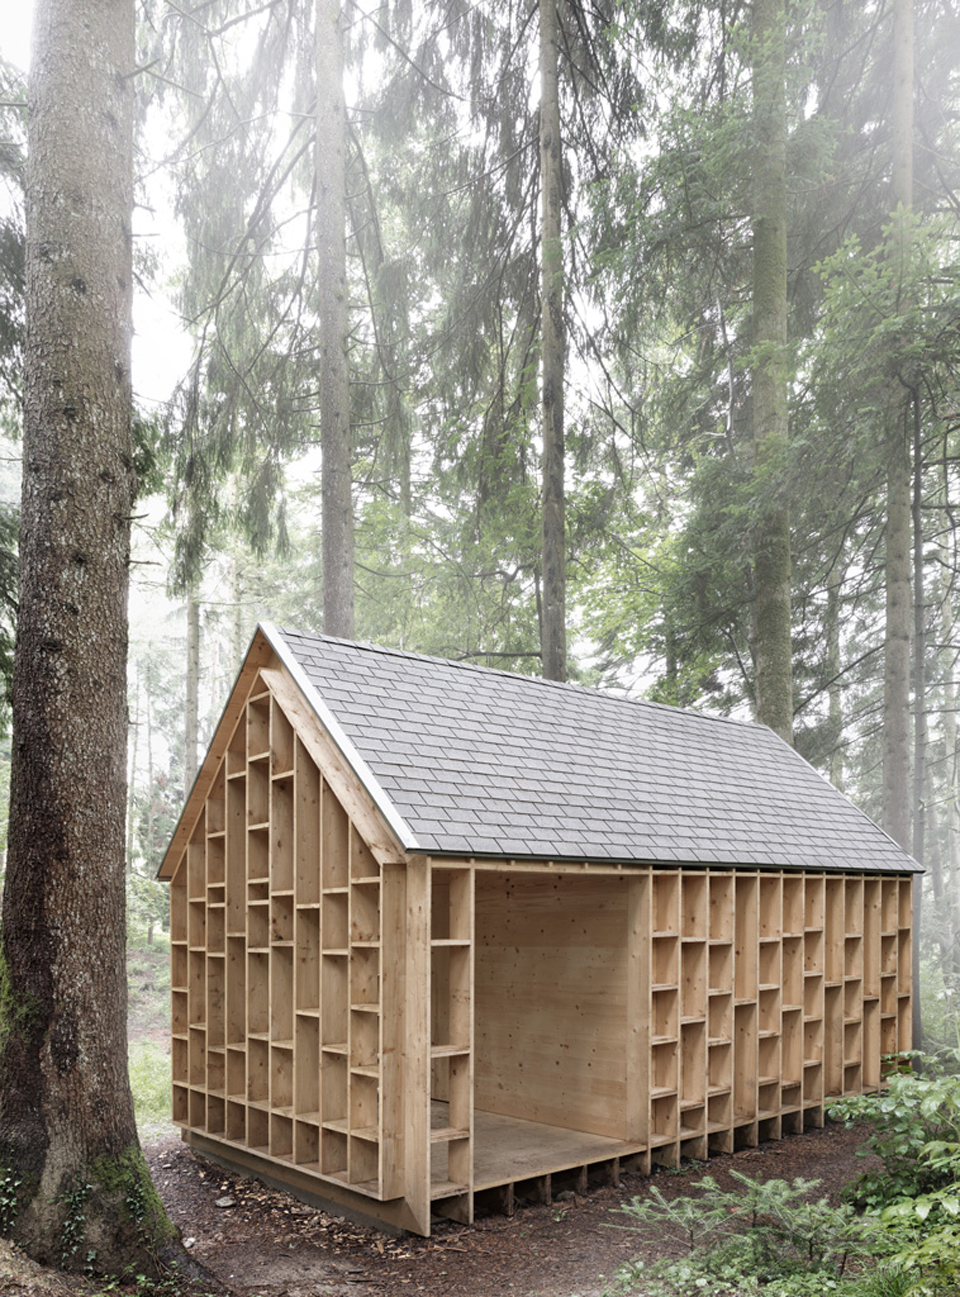 house-for-forest-owls-by-Bernd-Riegger-7